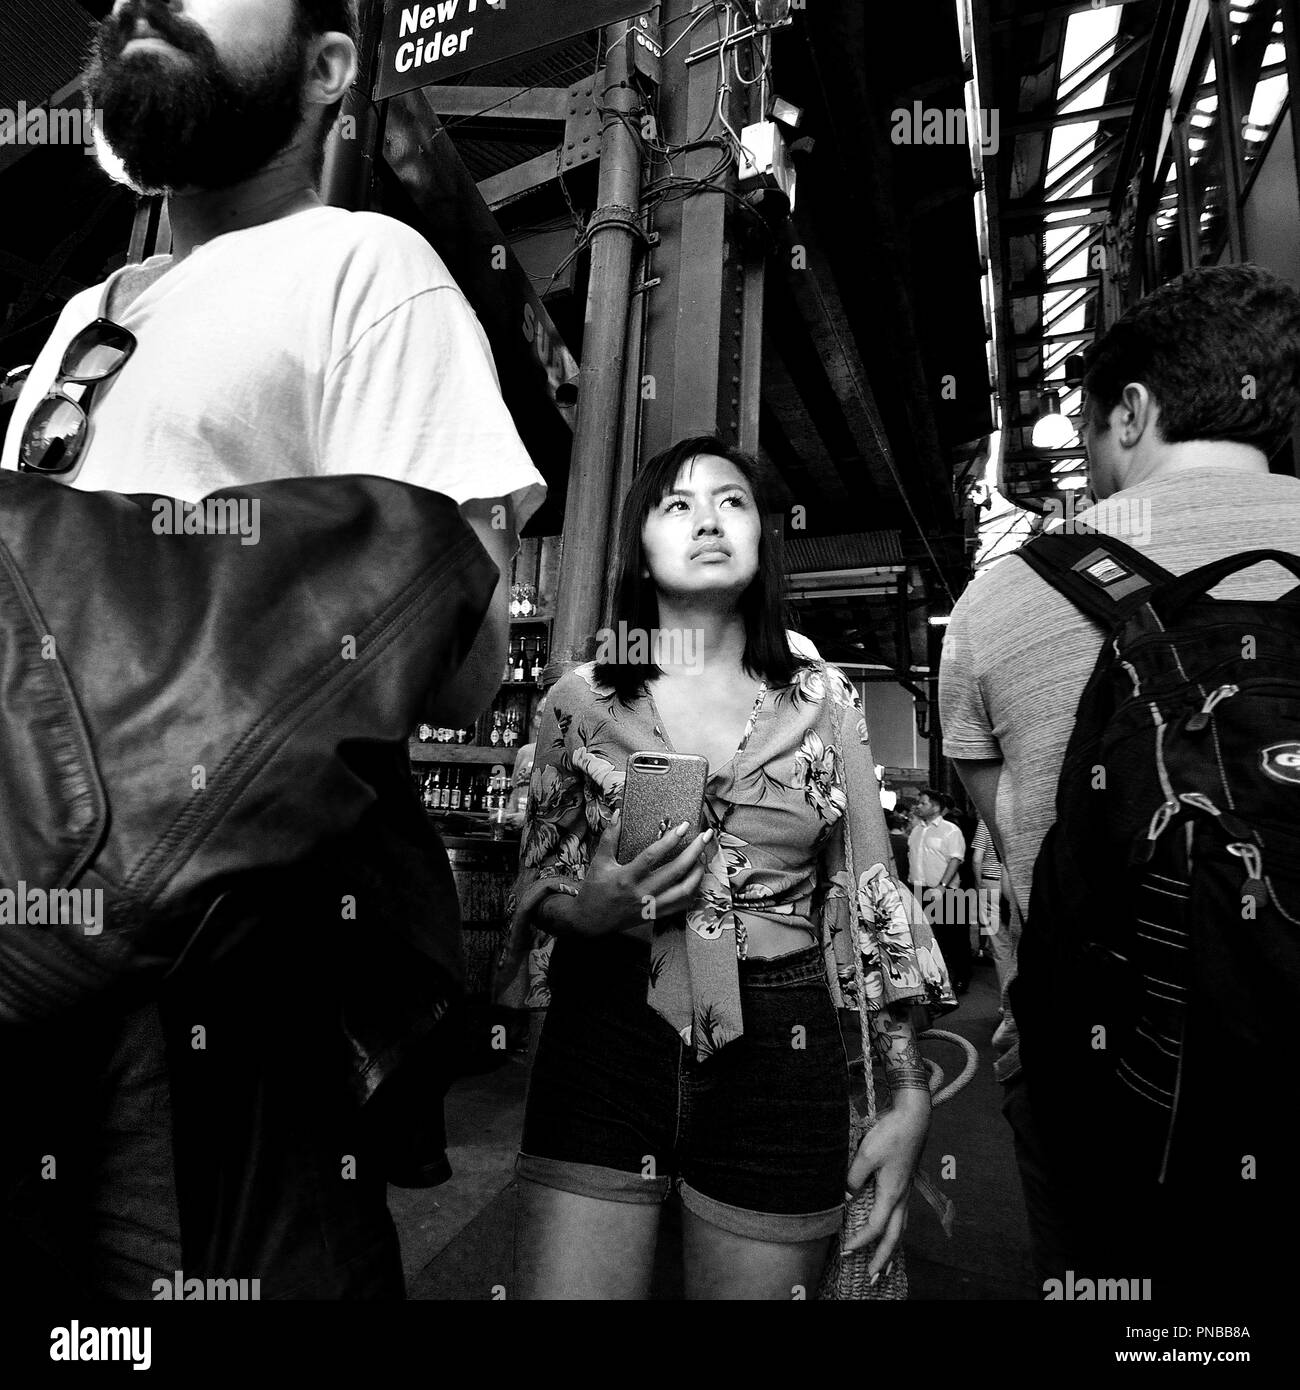 Asian tourist in a crowded Borough Market, Southwark, London, England, UK. Stock Photo